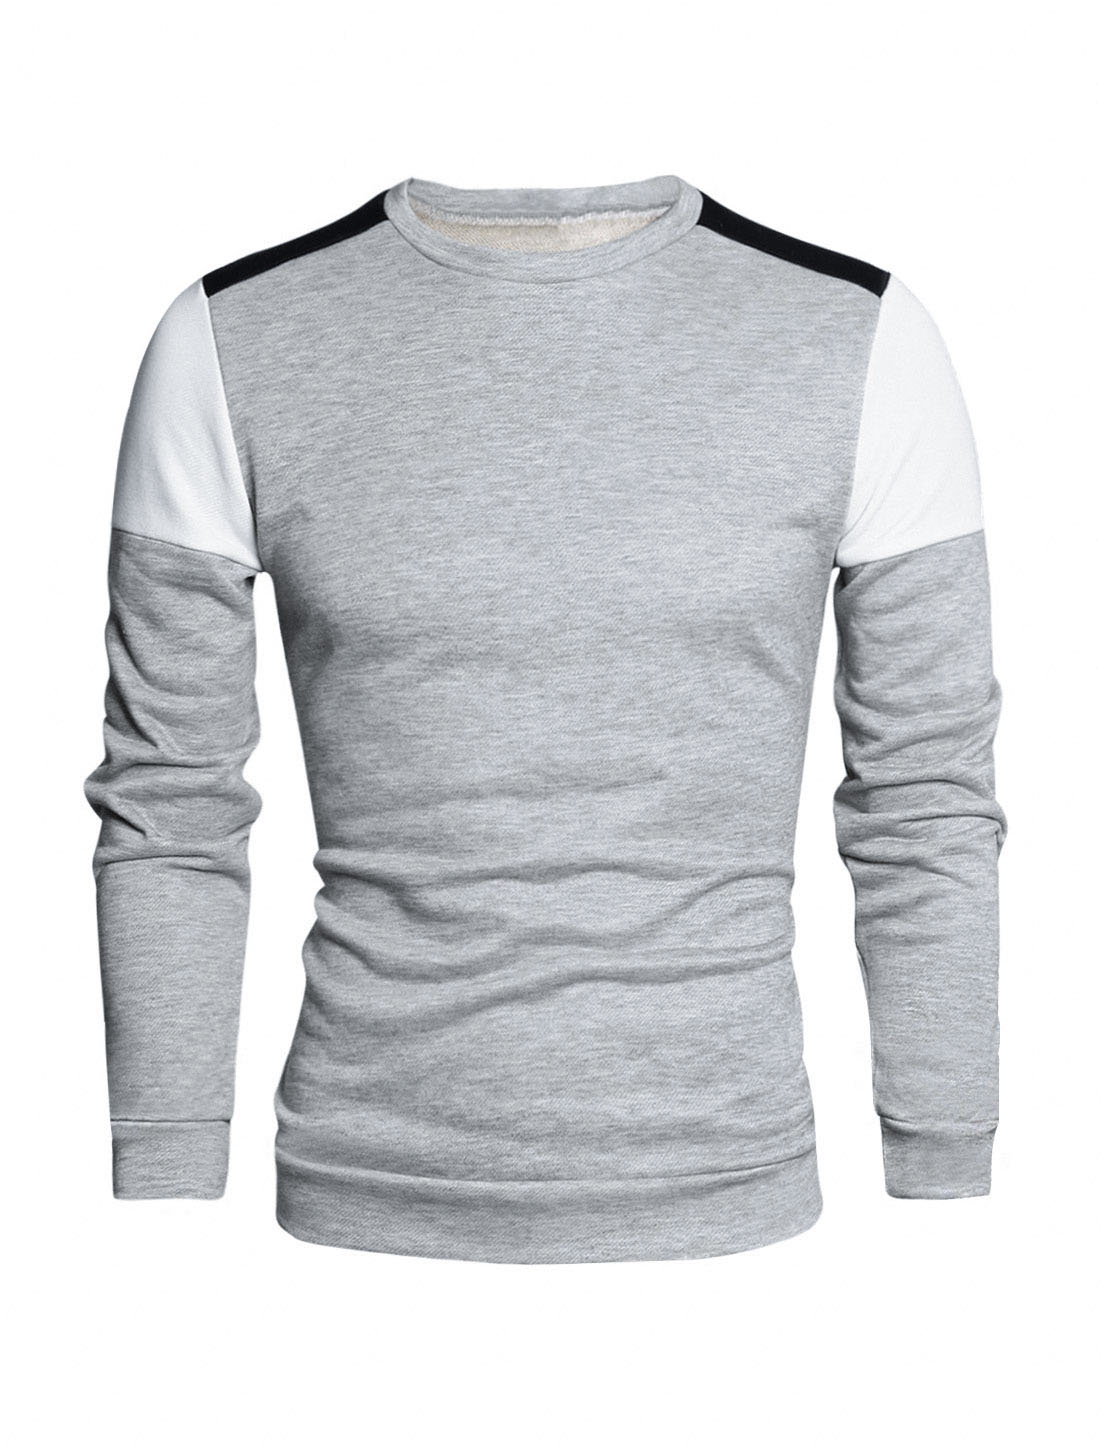 Men Color Block Crew Neck Long Sleeves Regular Fit T-shirt Light Gray M